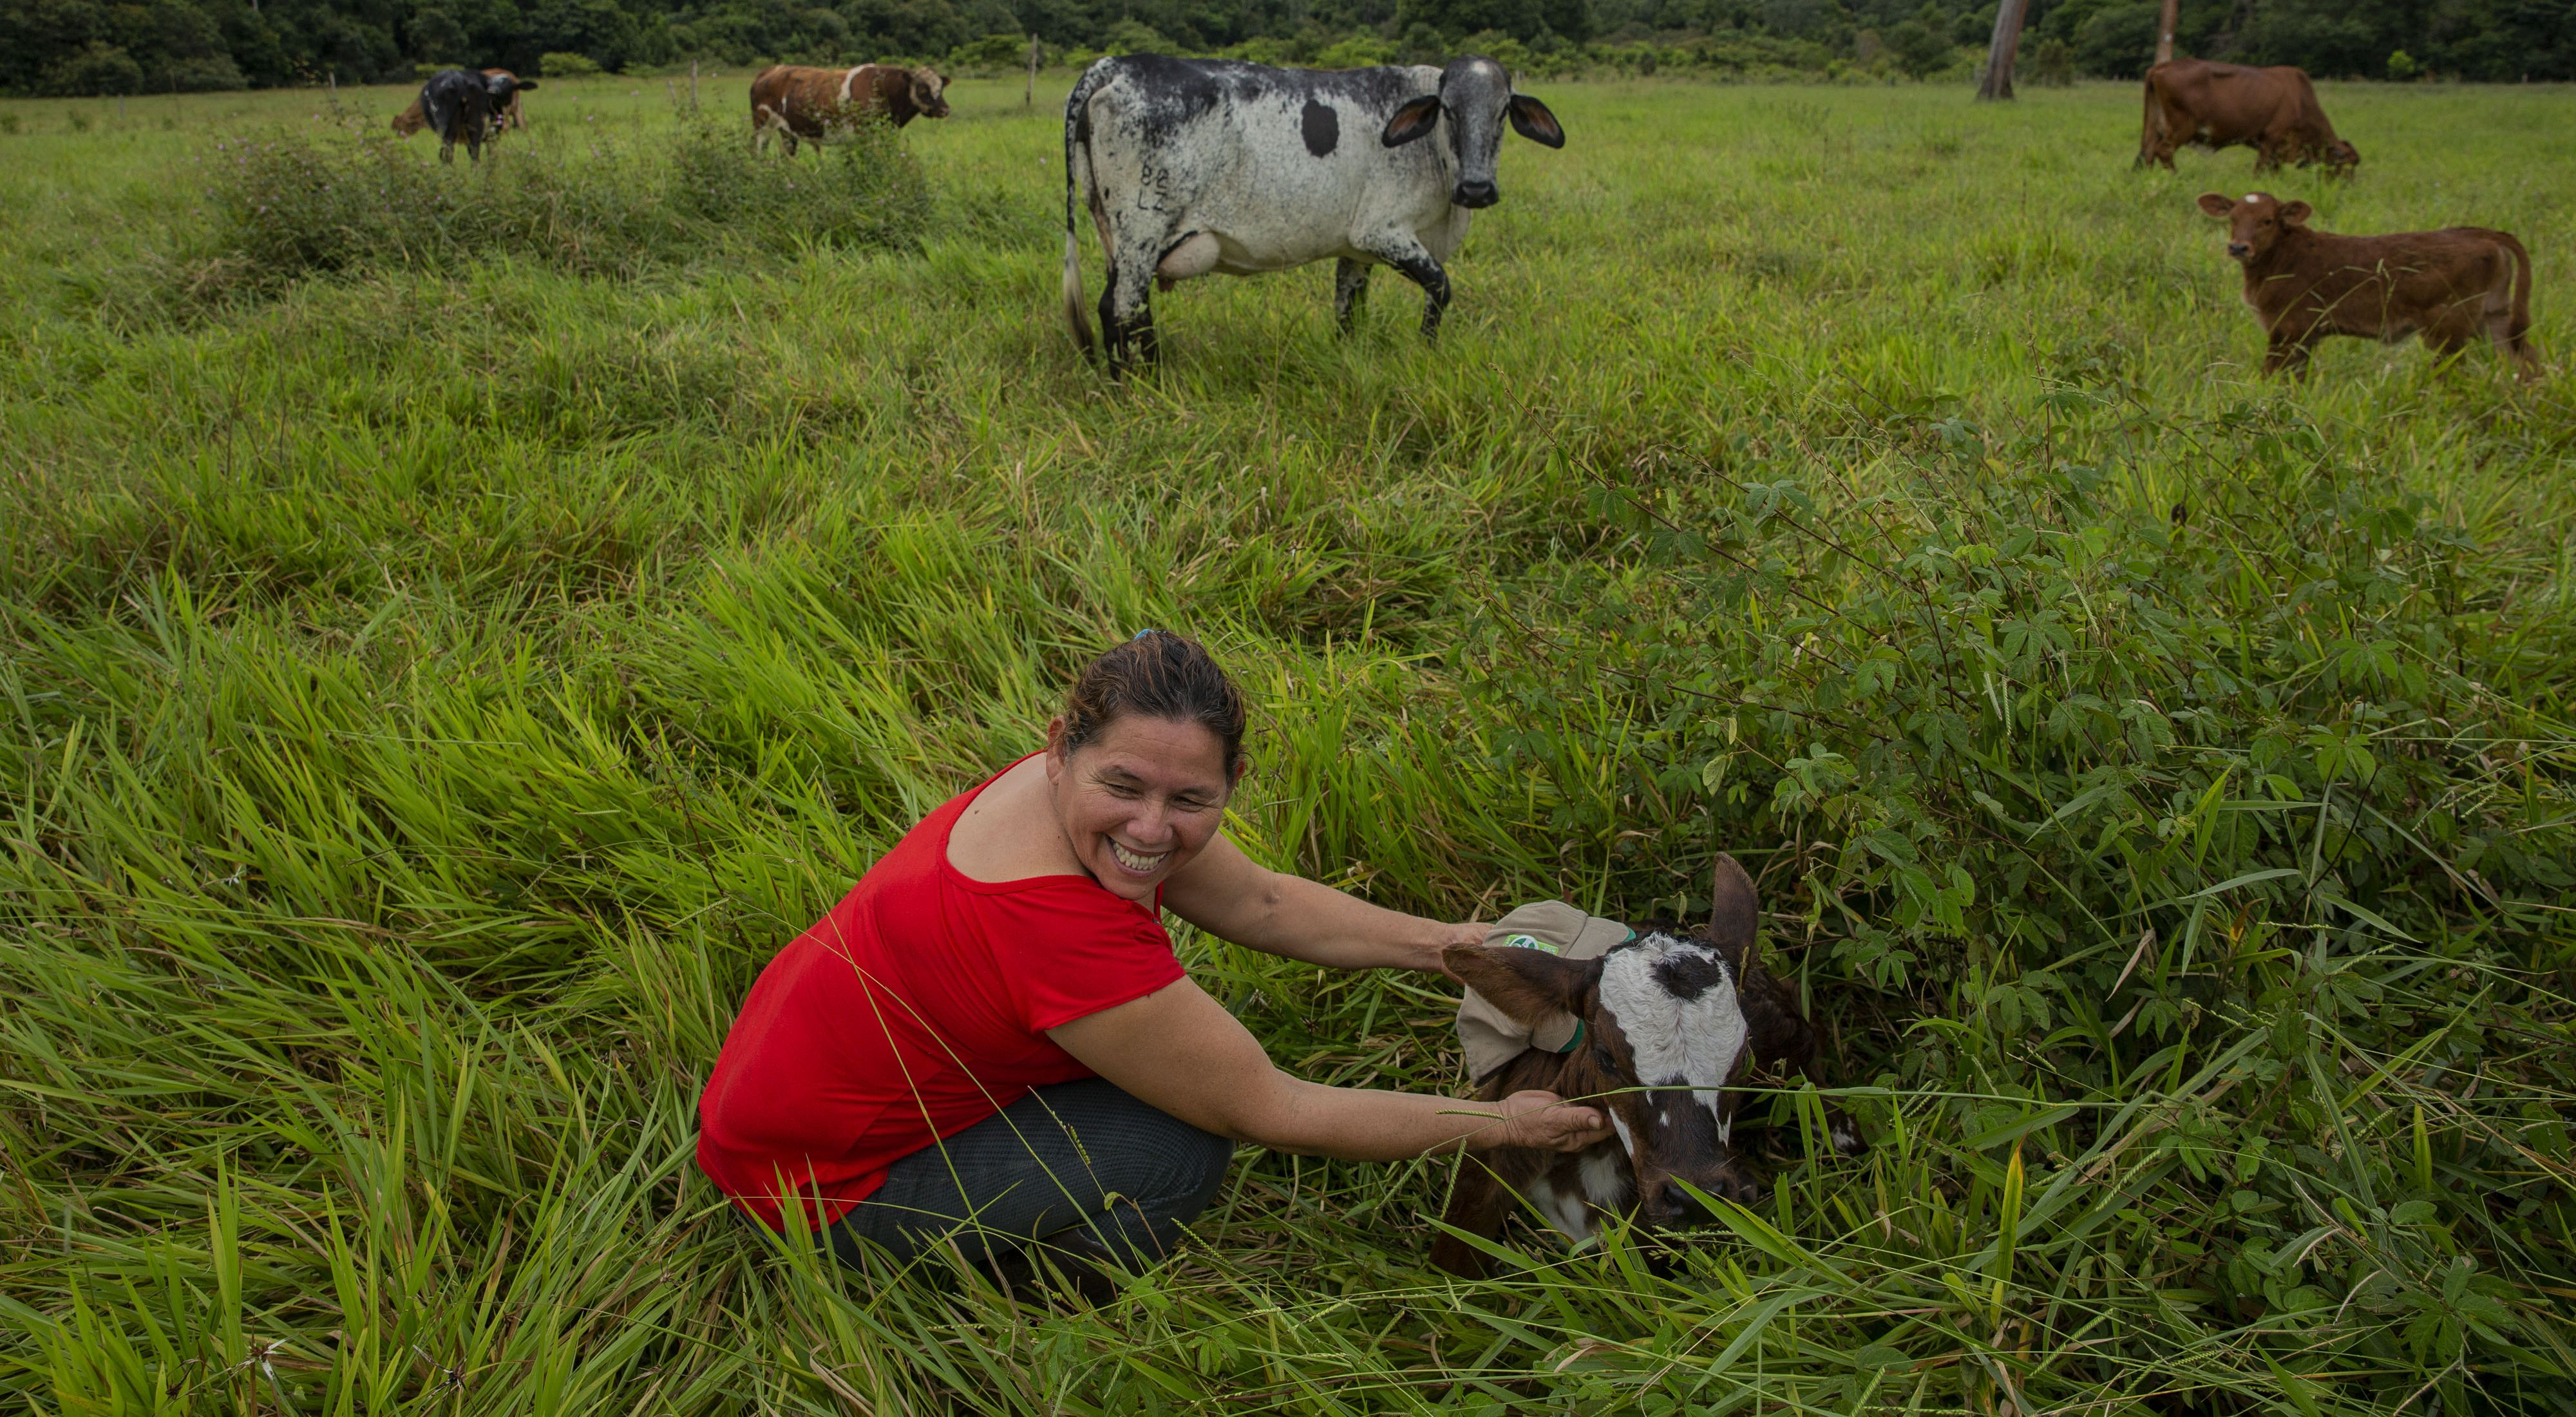 Mercedes Murillo Gutierrez attends to cows on her farm in Meta, Colombia